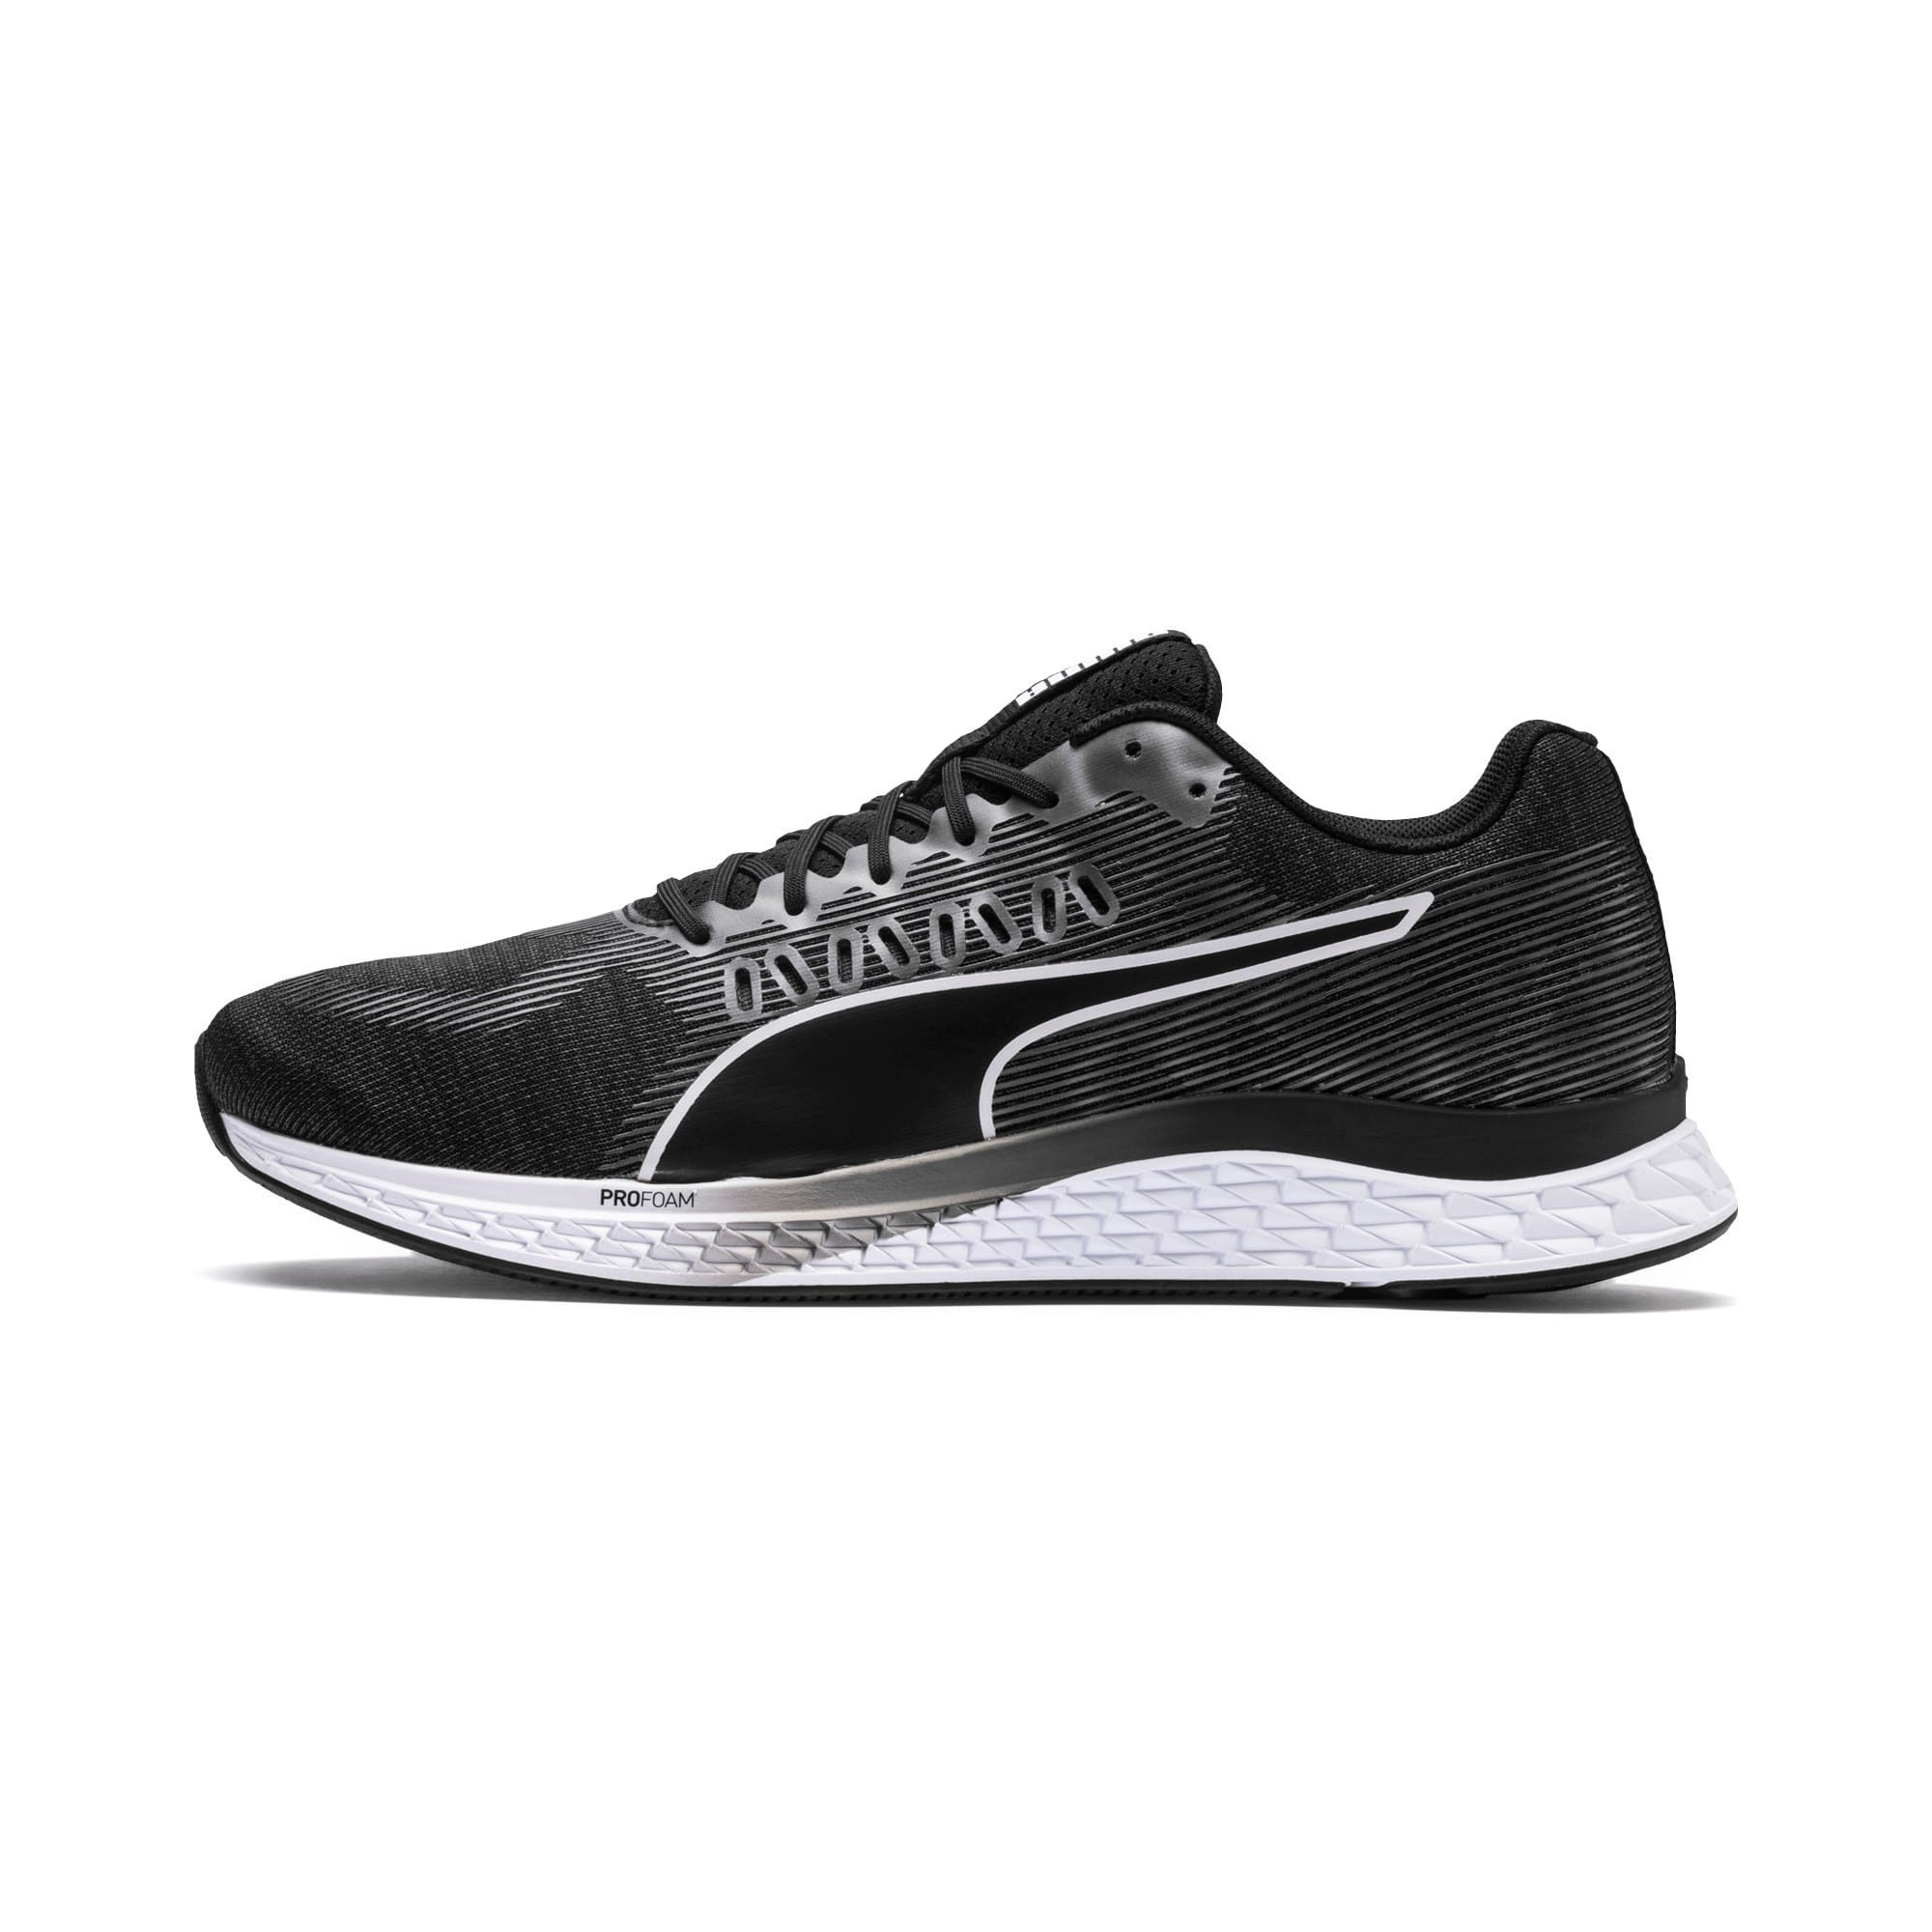 Thumbnail 1 of SPEED SUTAMINA Running Shoes, Puma Black-Puma White, medium